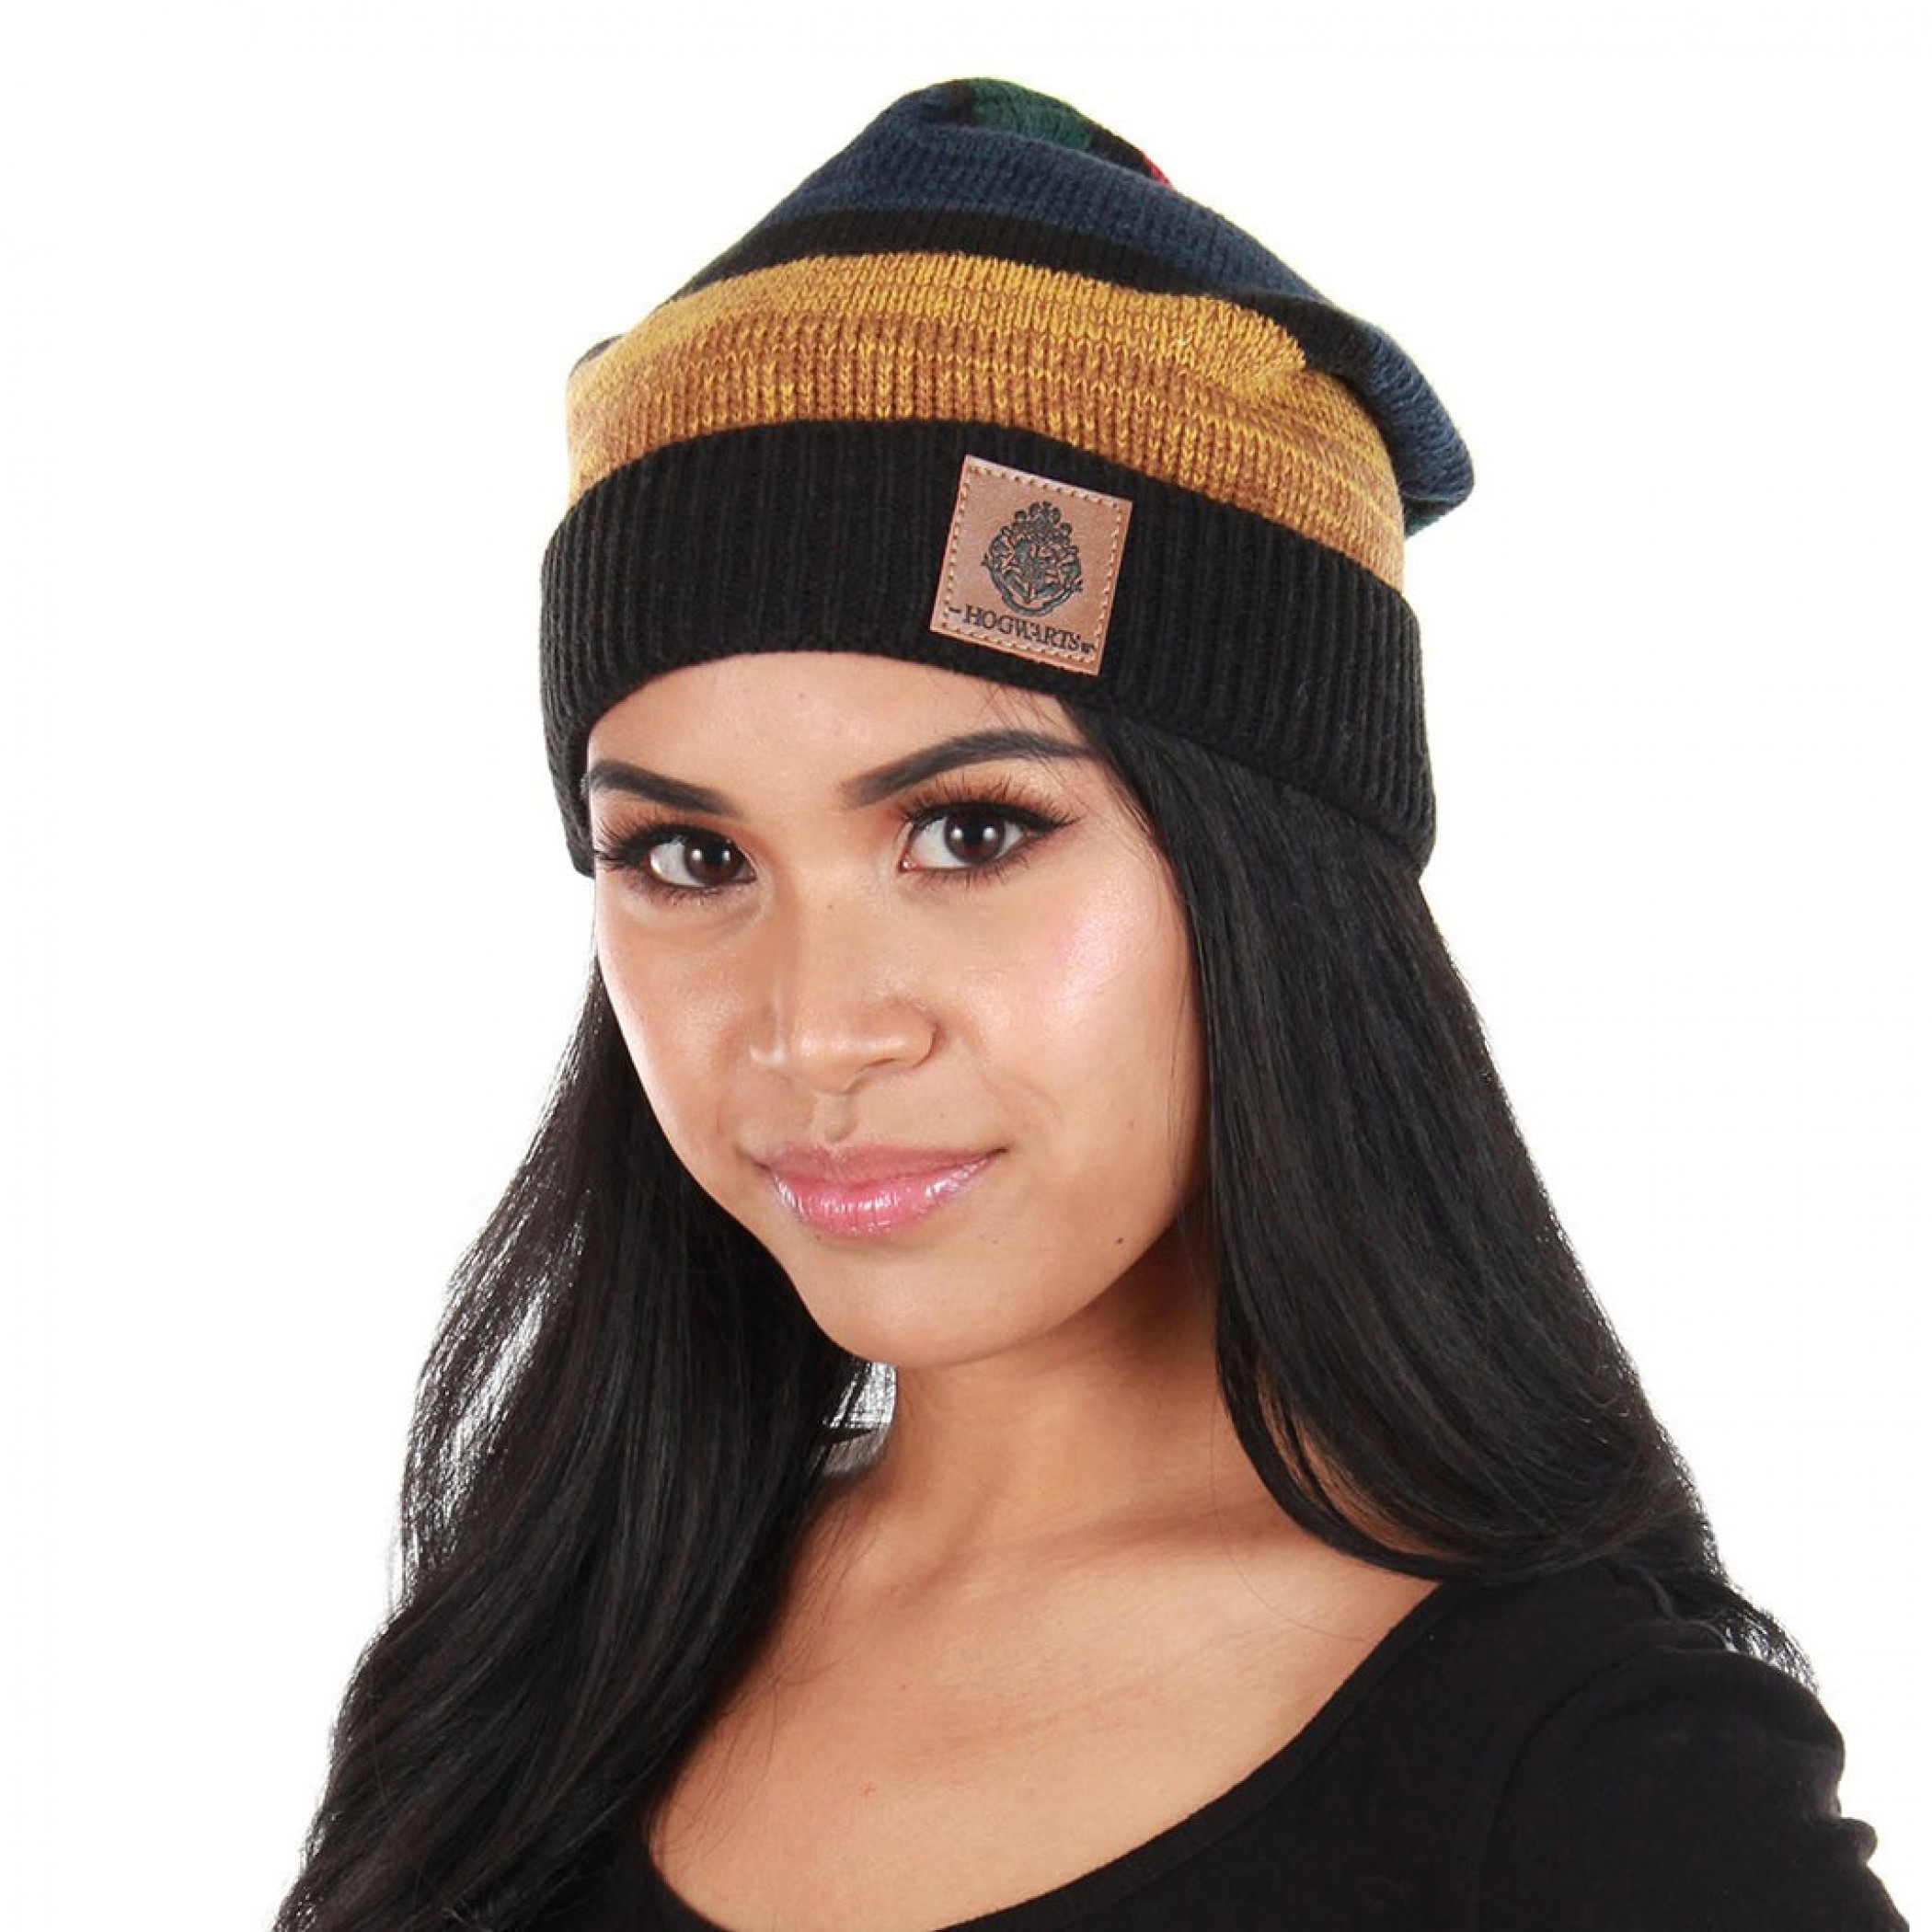 Harry Potter Hogwarts Beanie